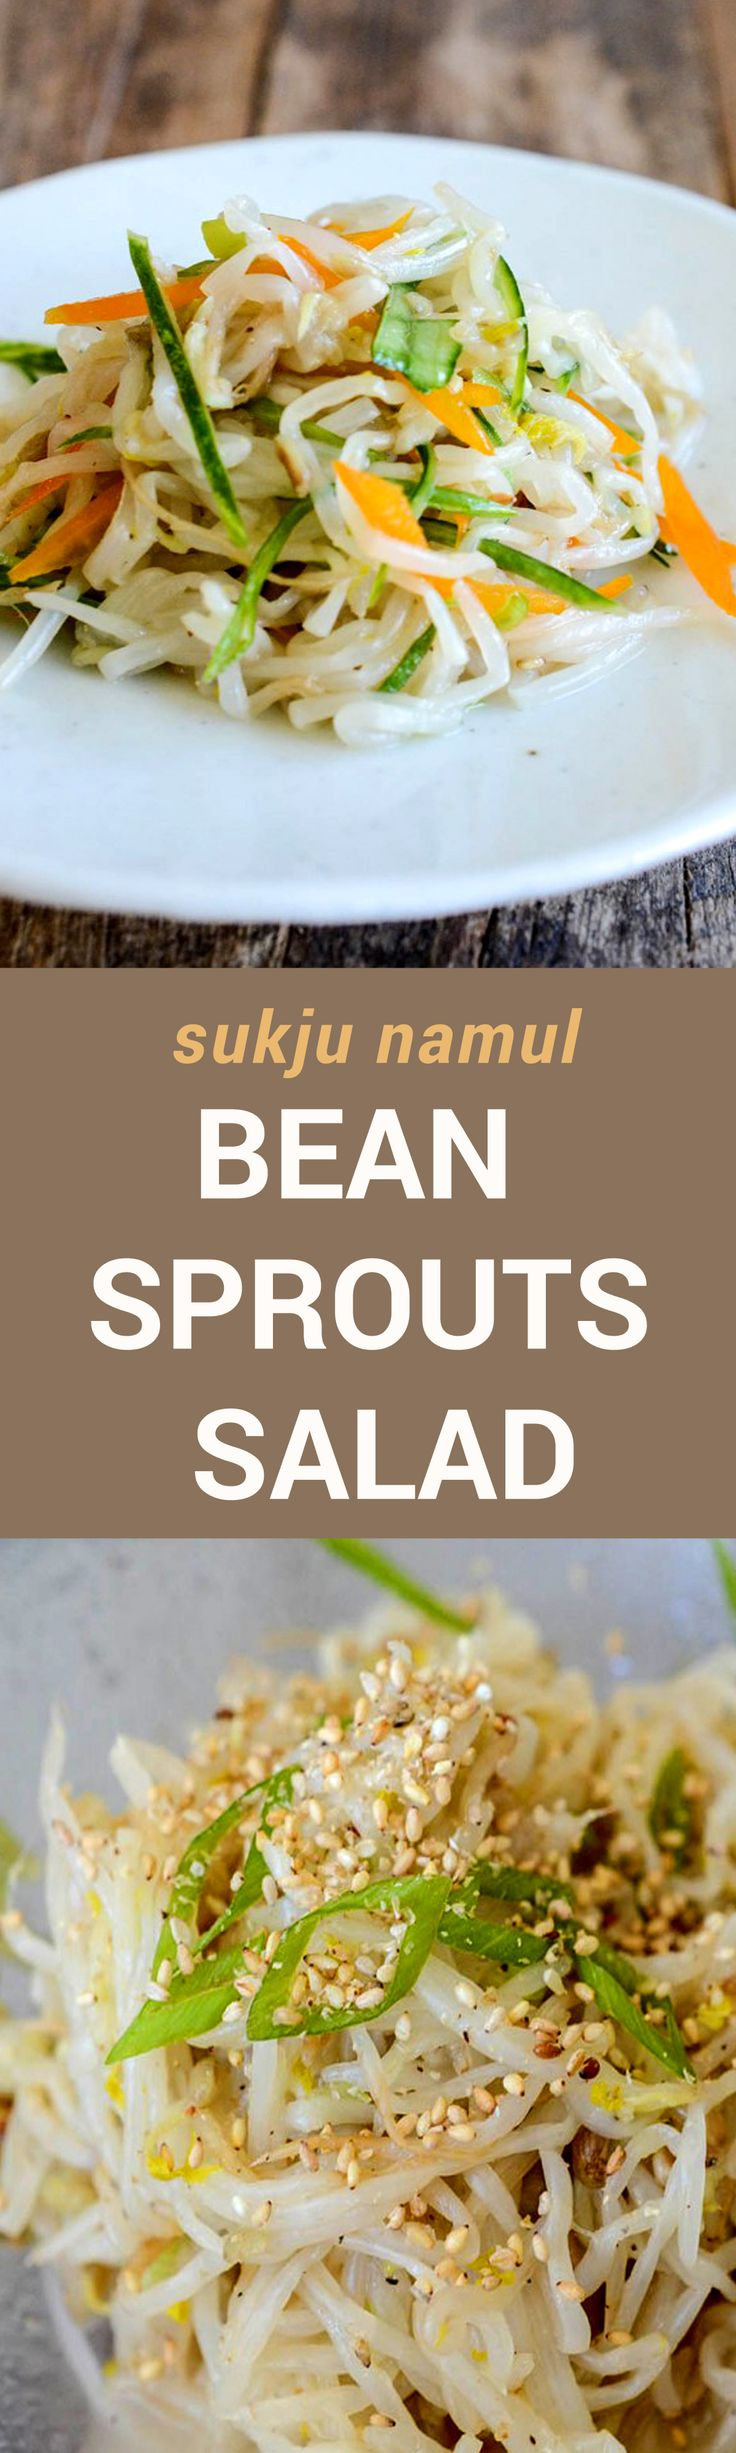 If you have searched for recipes for Korean Sukju Namul online, you probably noticed that many have garlic in it. But my recipe omits garlic. I love the pure simple taste of cooked mung bean sprouts, seasoned lightly with salt and enhanced just a little bit with a touch of sesame oil and green onions. I asked some of my sisters and they agreed that this is the best way to eat it.